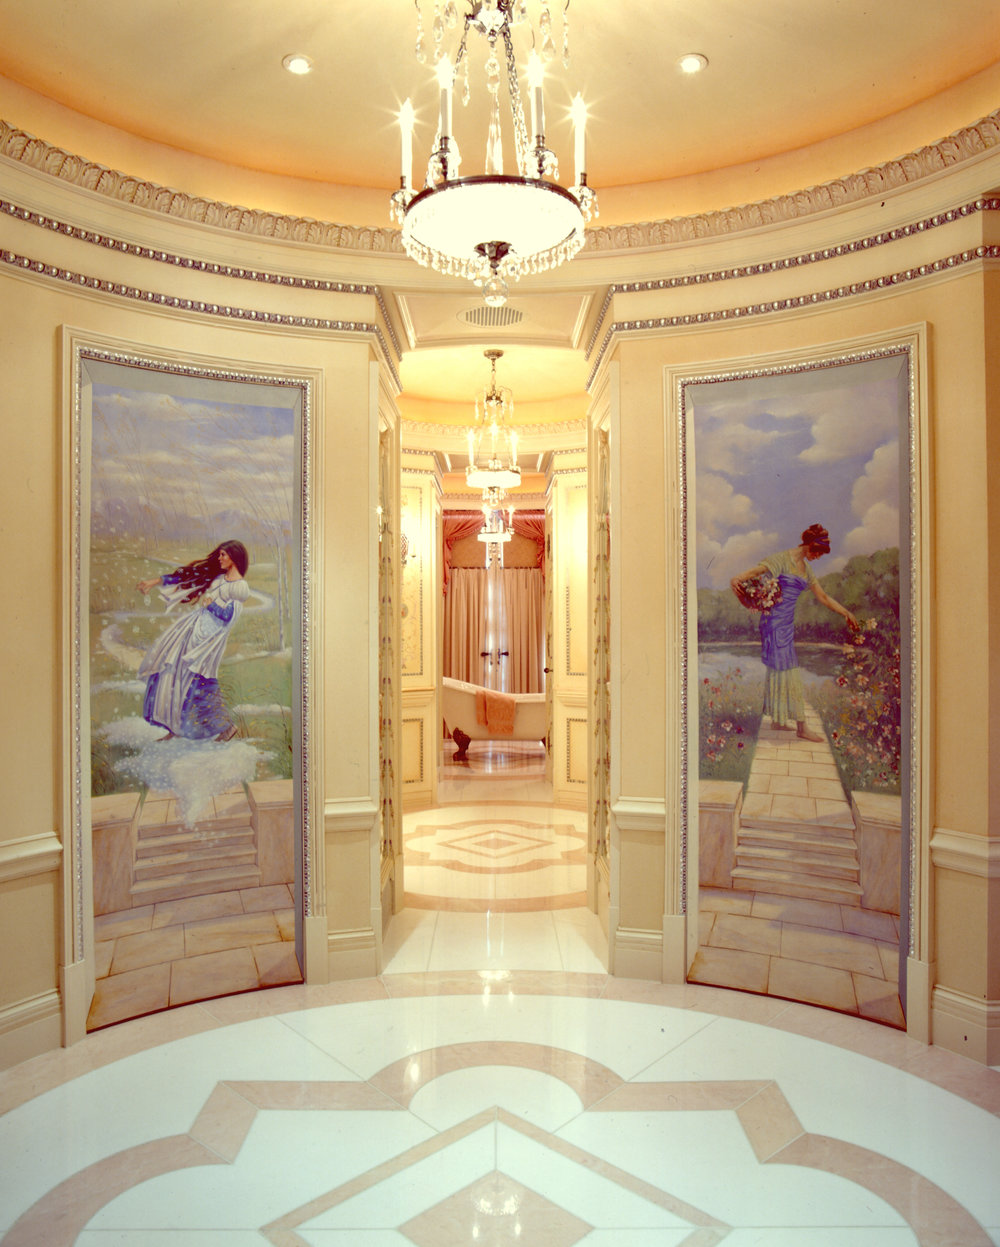 Murals, period decorative painting, and historic finishes in master bath suite.